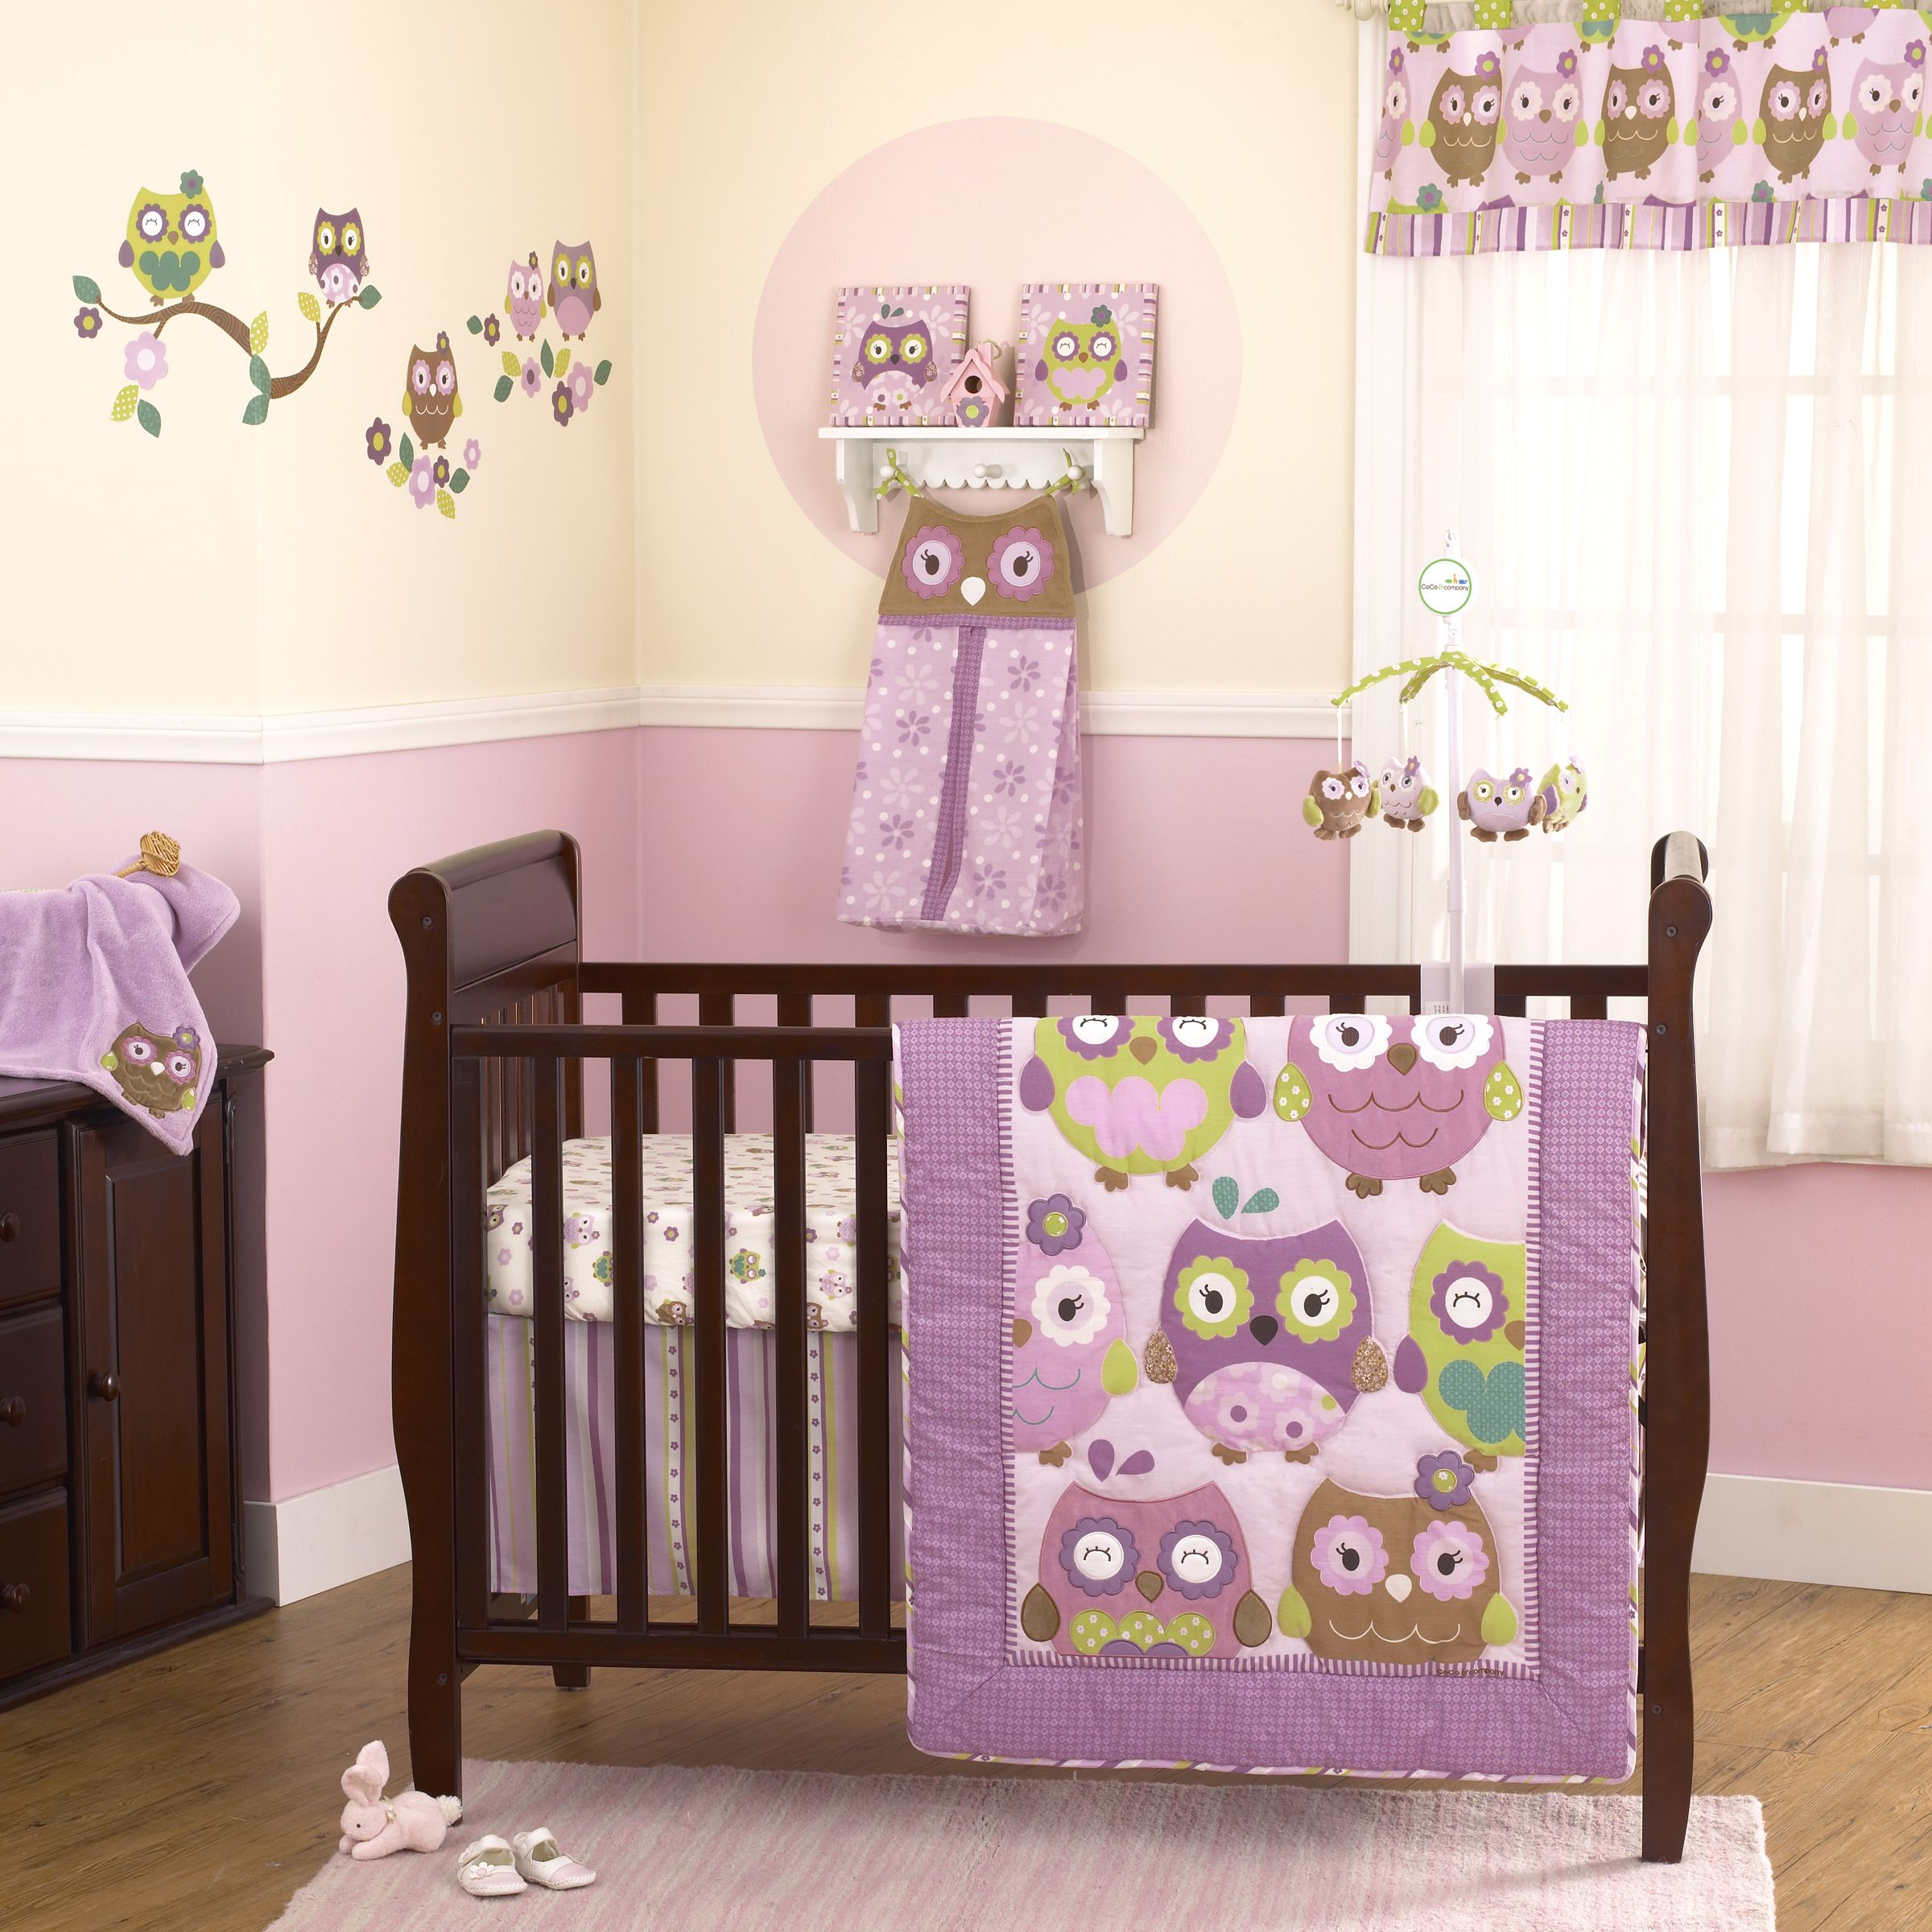 Owl Wonderland Collection Crib Bedding Girl Owl Crib Bedding